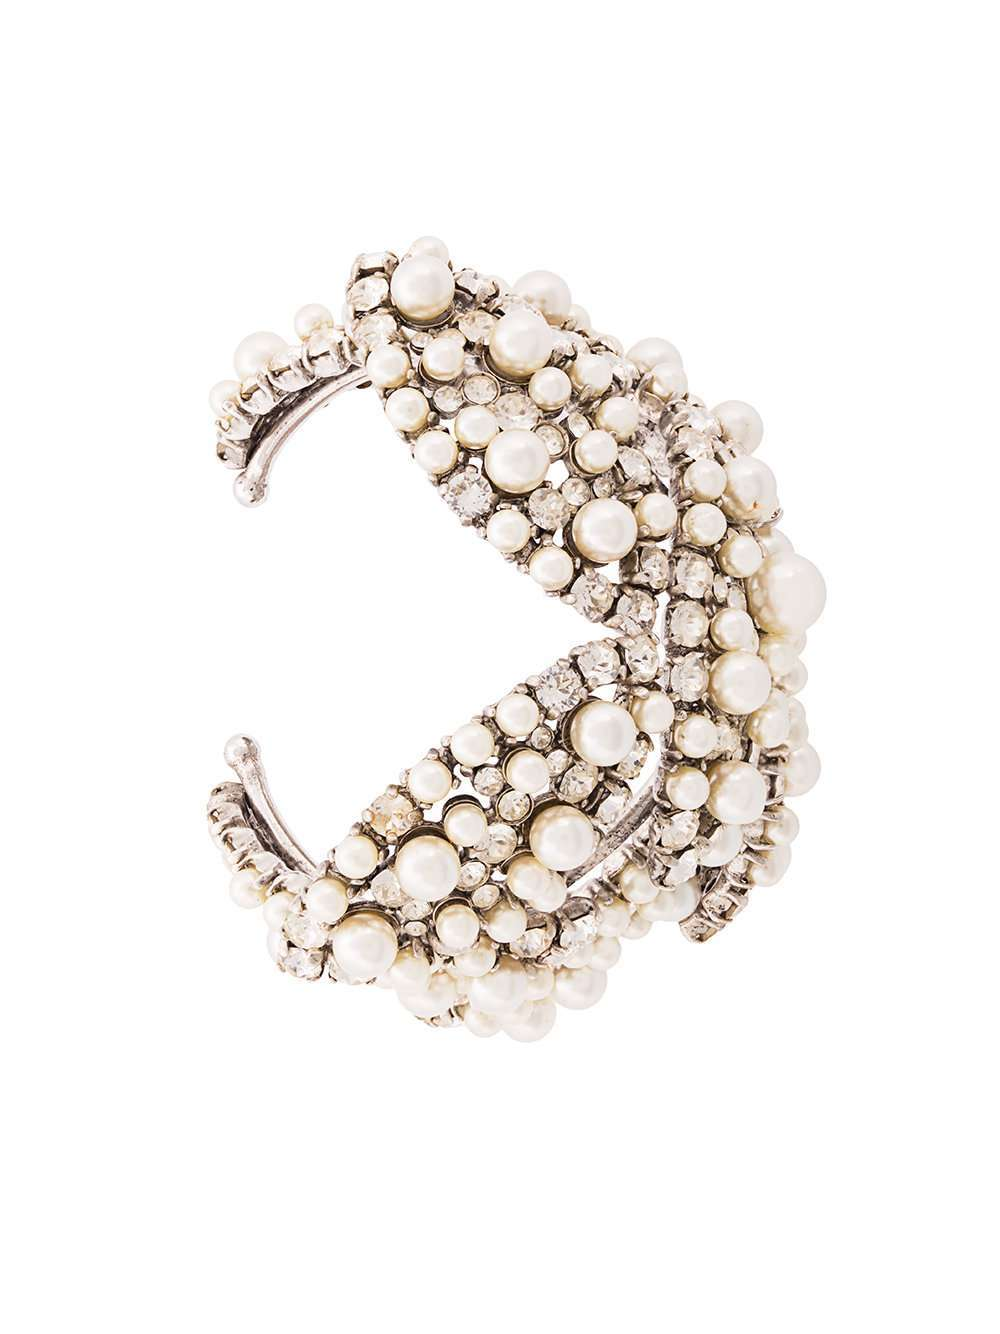 Bracciale di diamanti e perle Saint Laurent